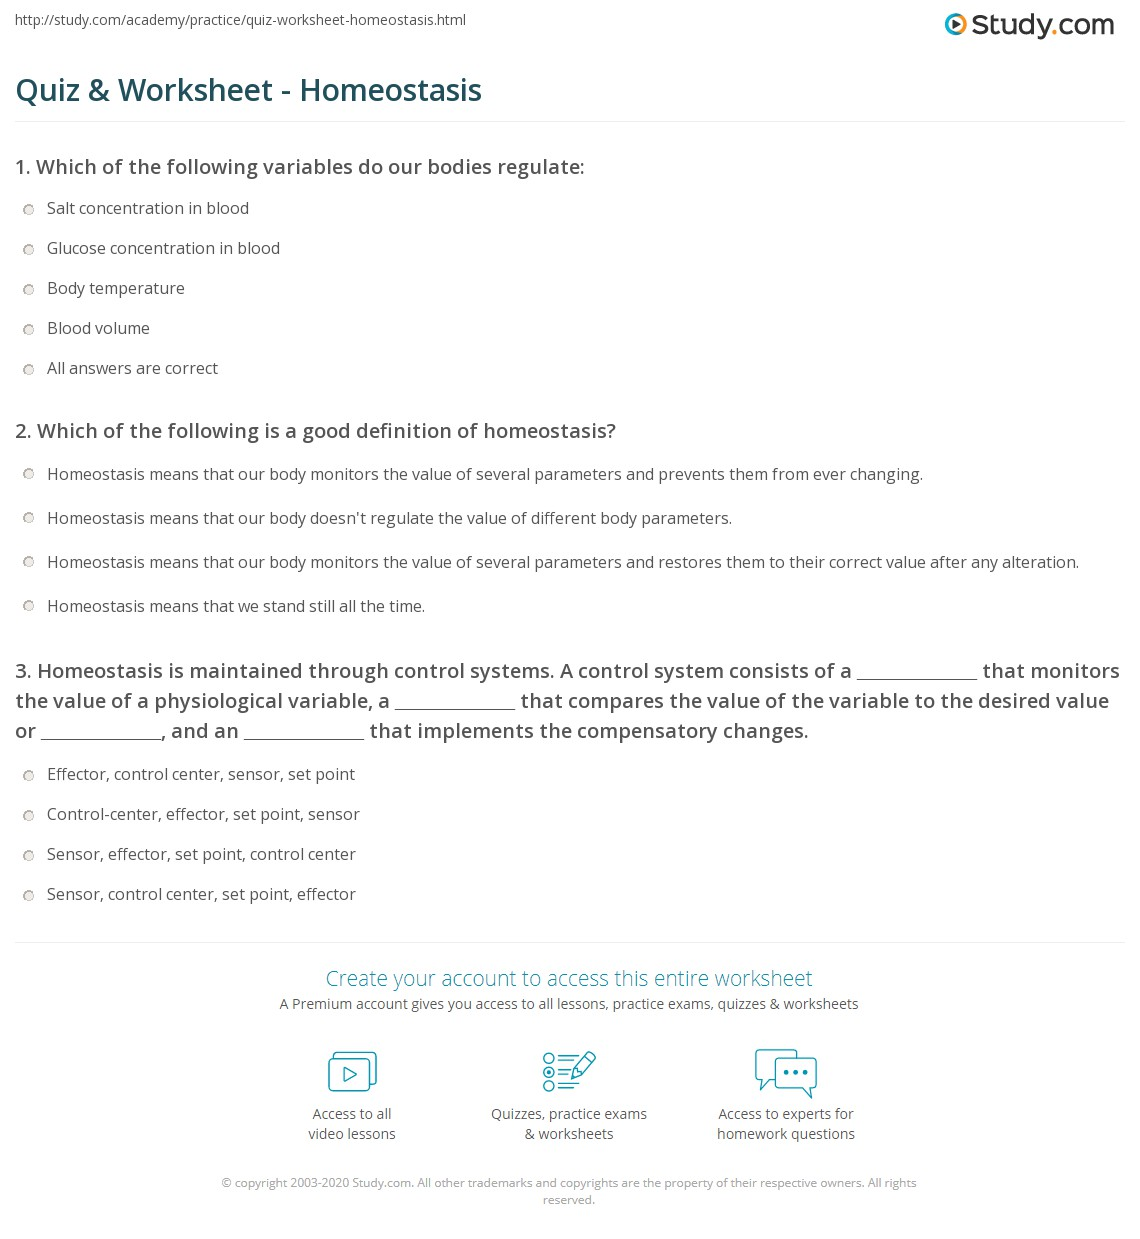 Quiz & Worksheet - Homeostasis | Study.com